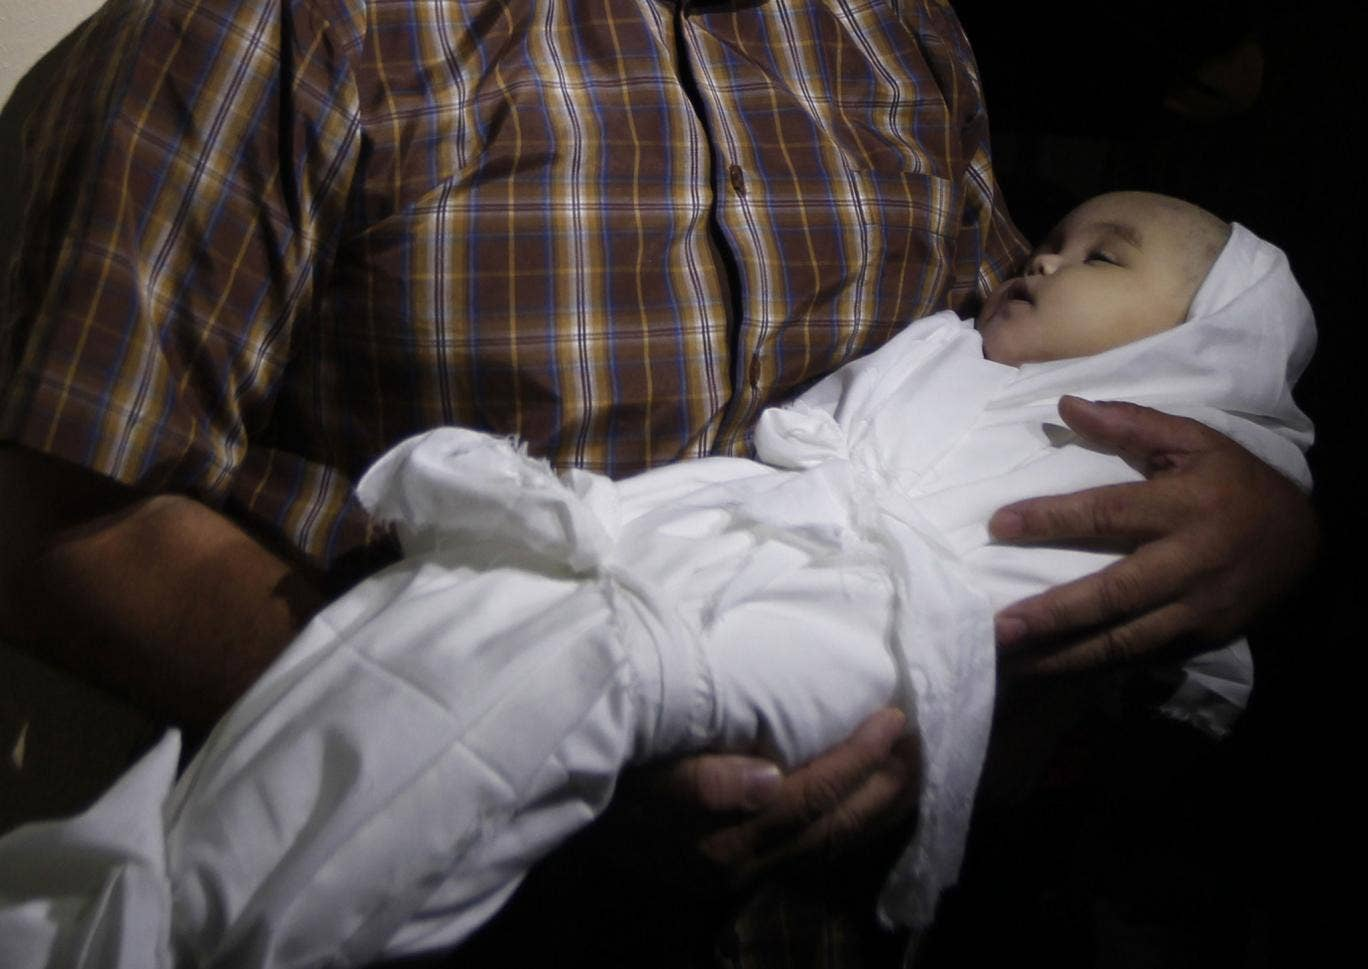 A Palestinian mourner carries the body of five-month-old girl Lama al-Satri after she was killed in an Israeli air strike the previous day, during her funeral in Rafah in the southern Gaza Strip